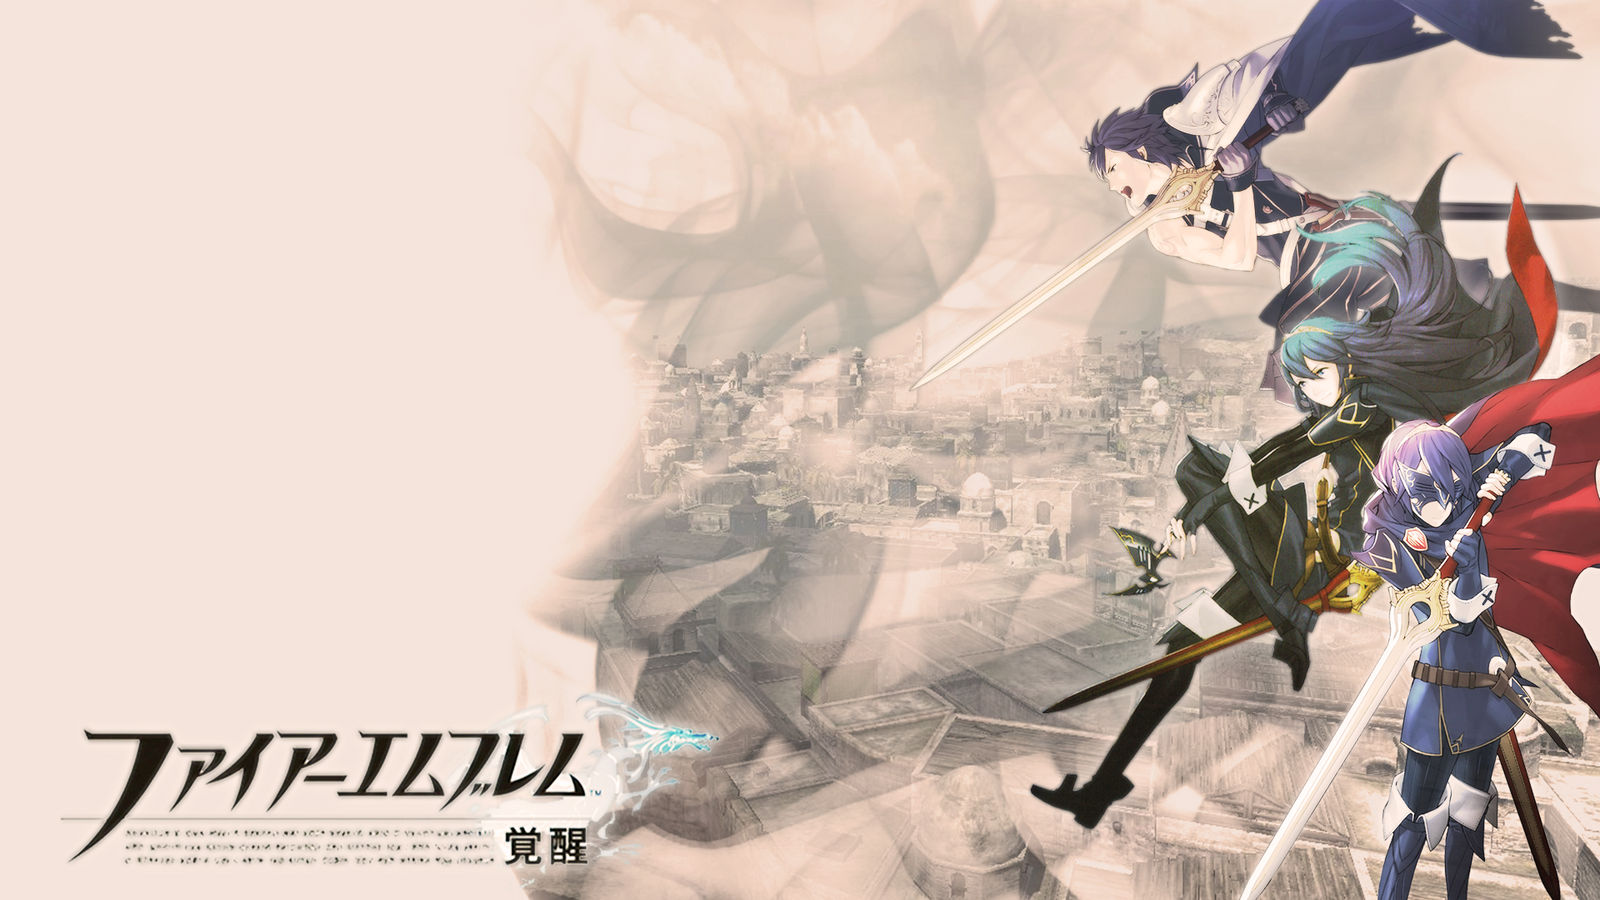 Fire Emblem Awakening Wallpaper By Lastblues On Deviantart